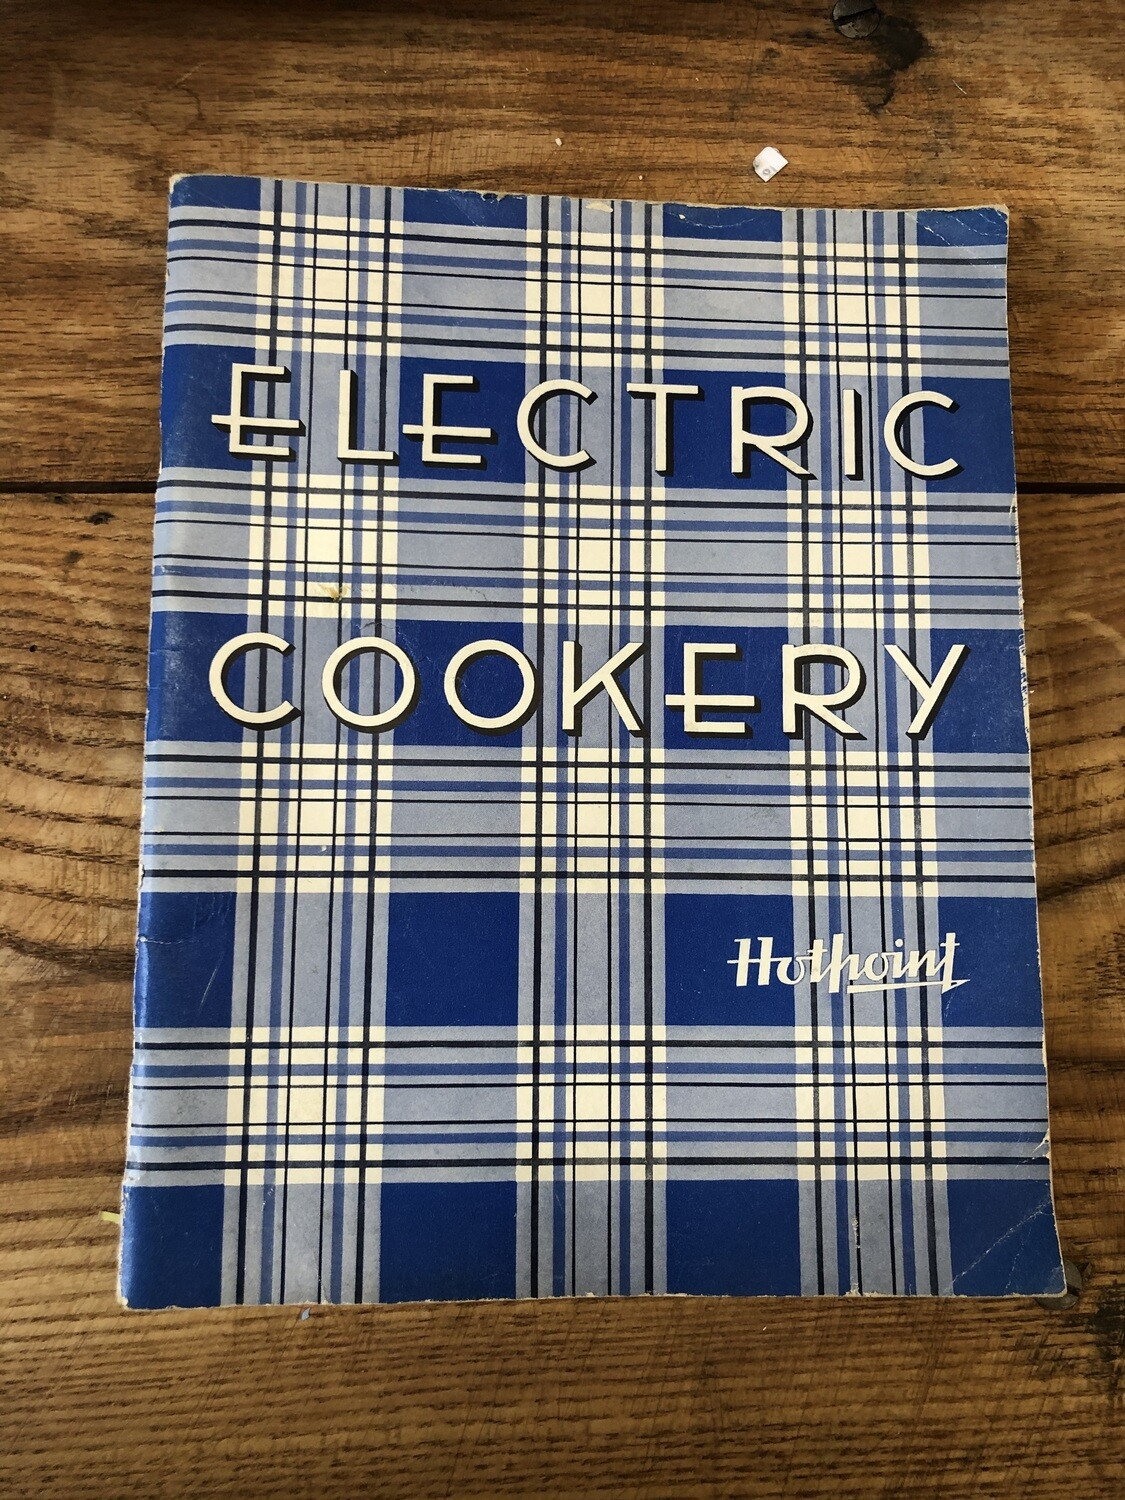 Electric Cookery - Hotpoint